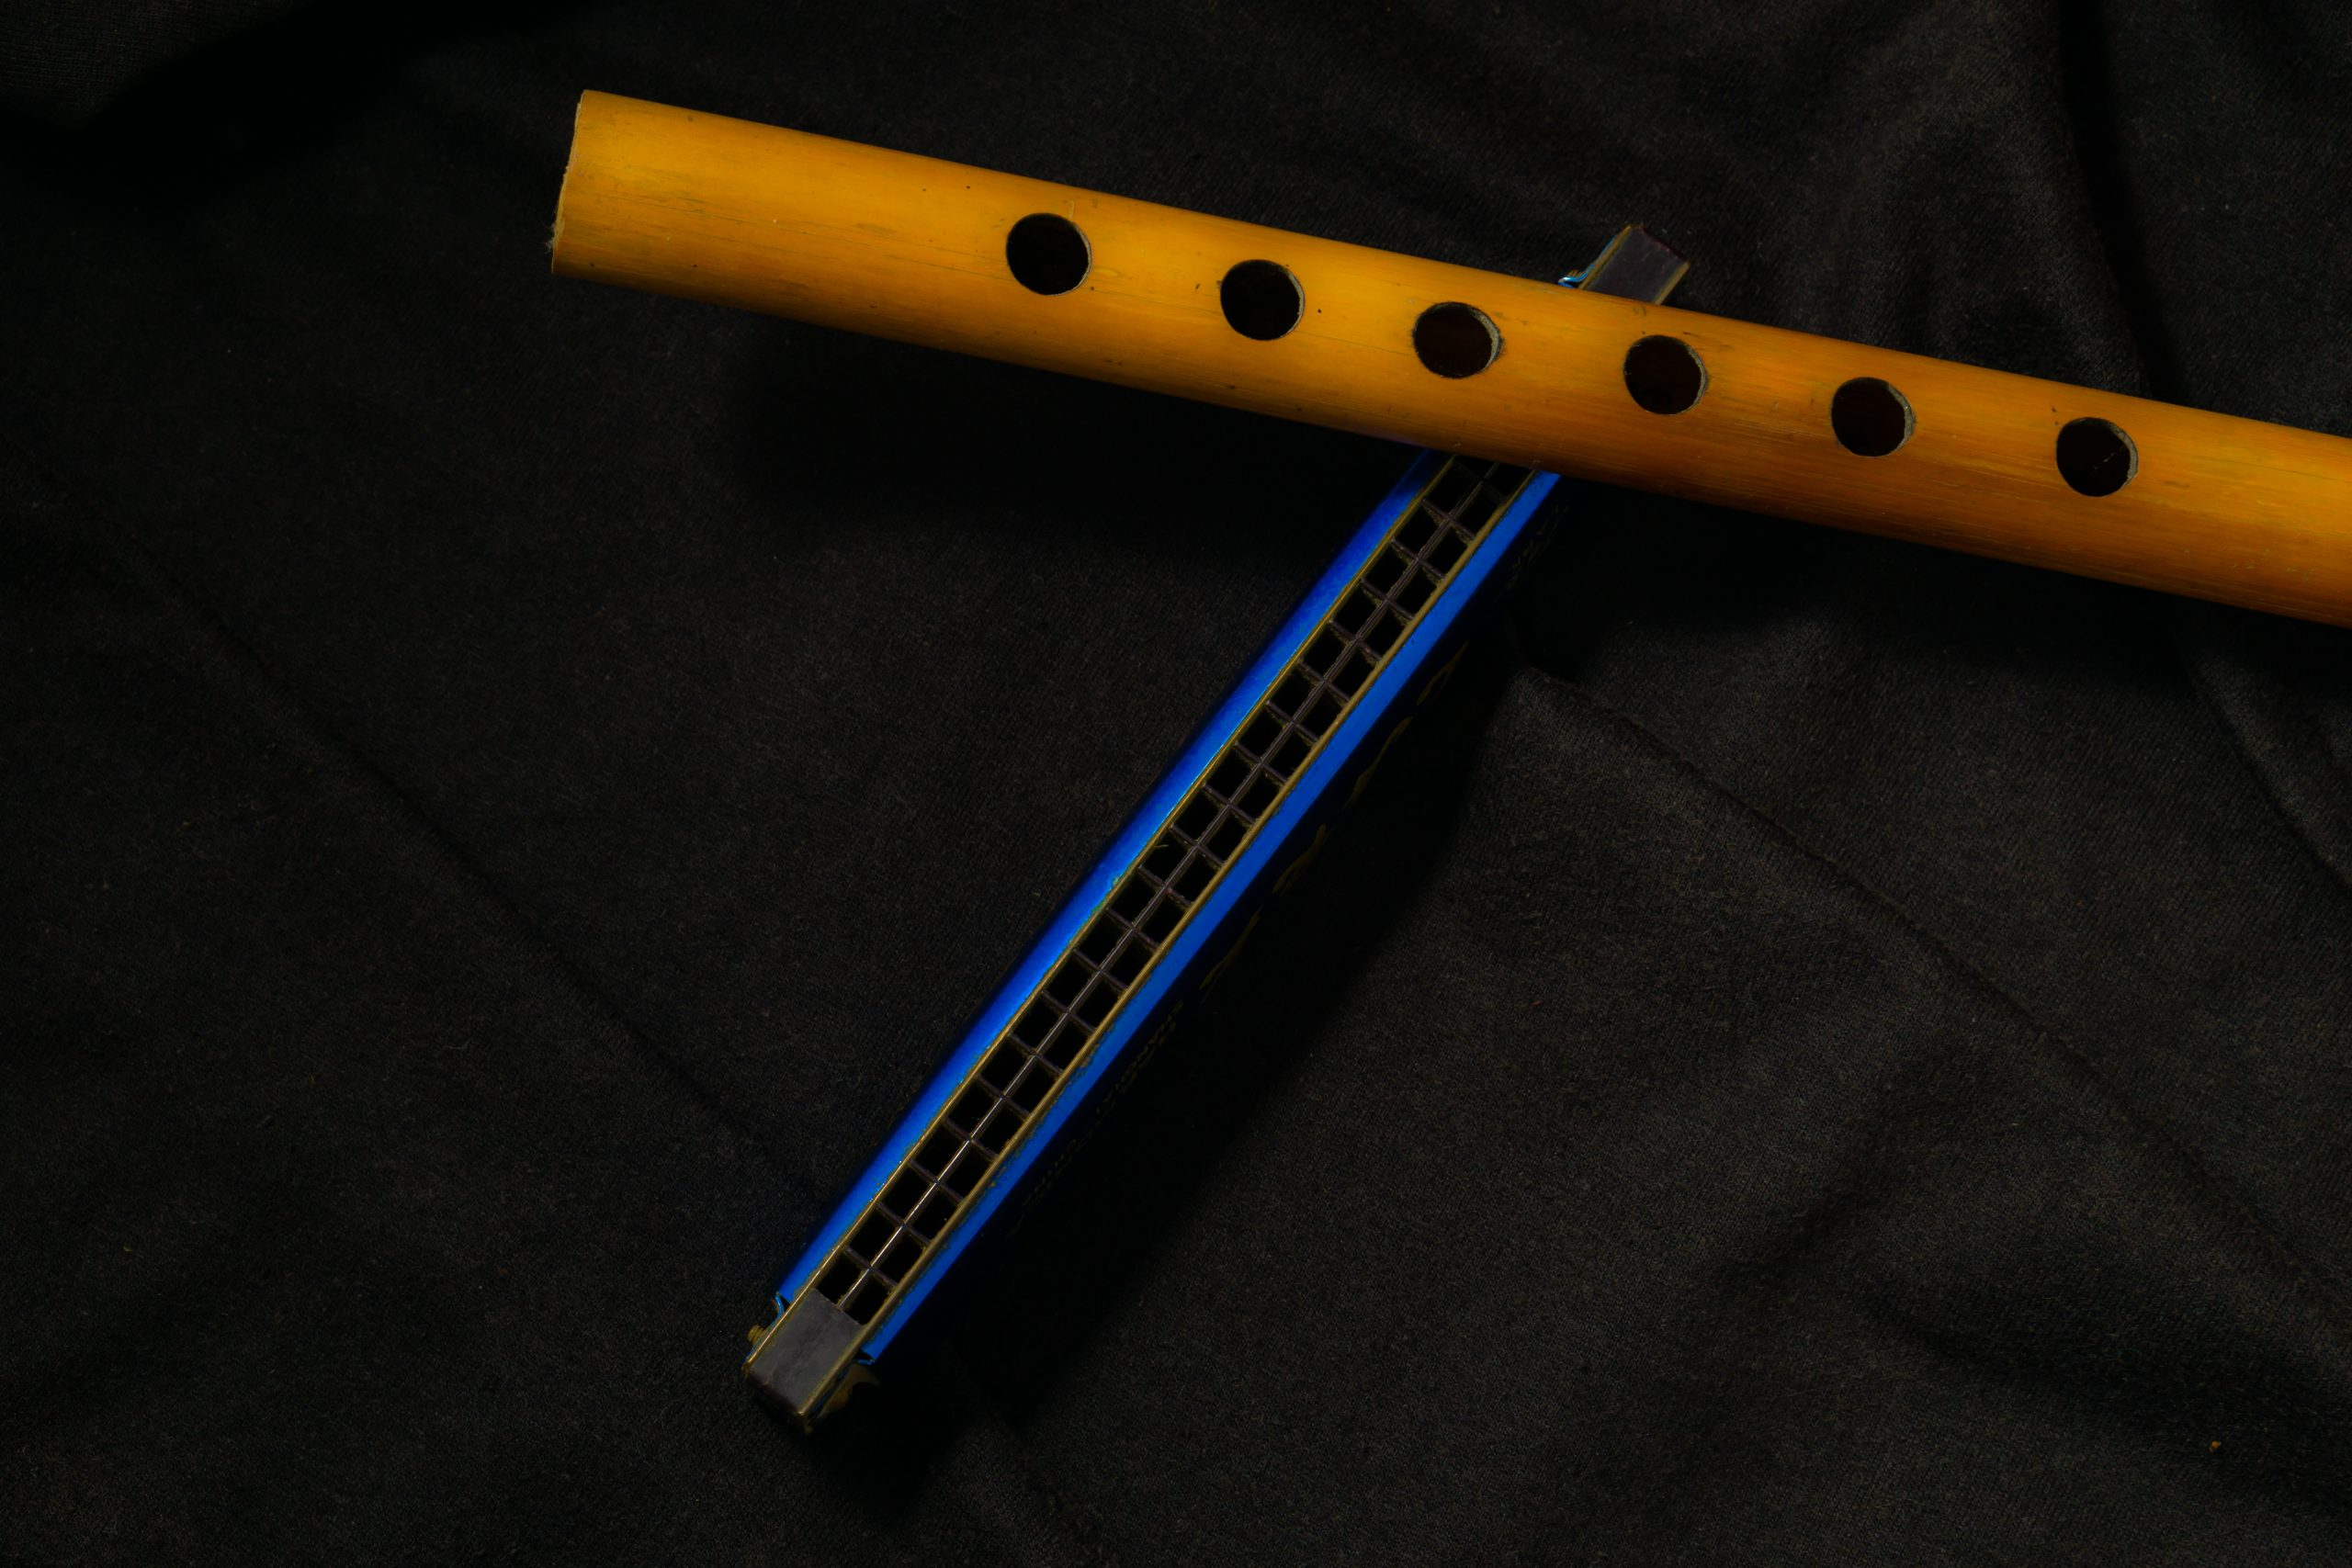 Bamboo flute and harmonica on a black background